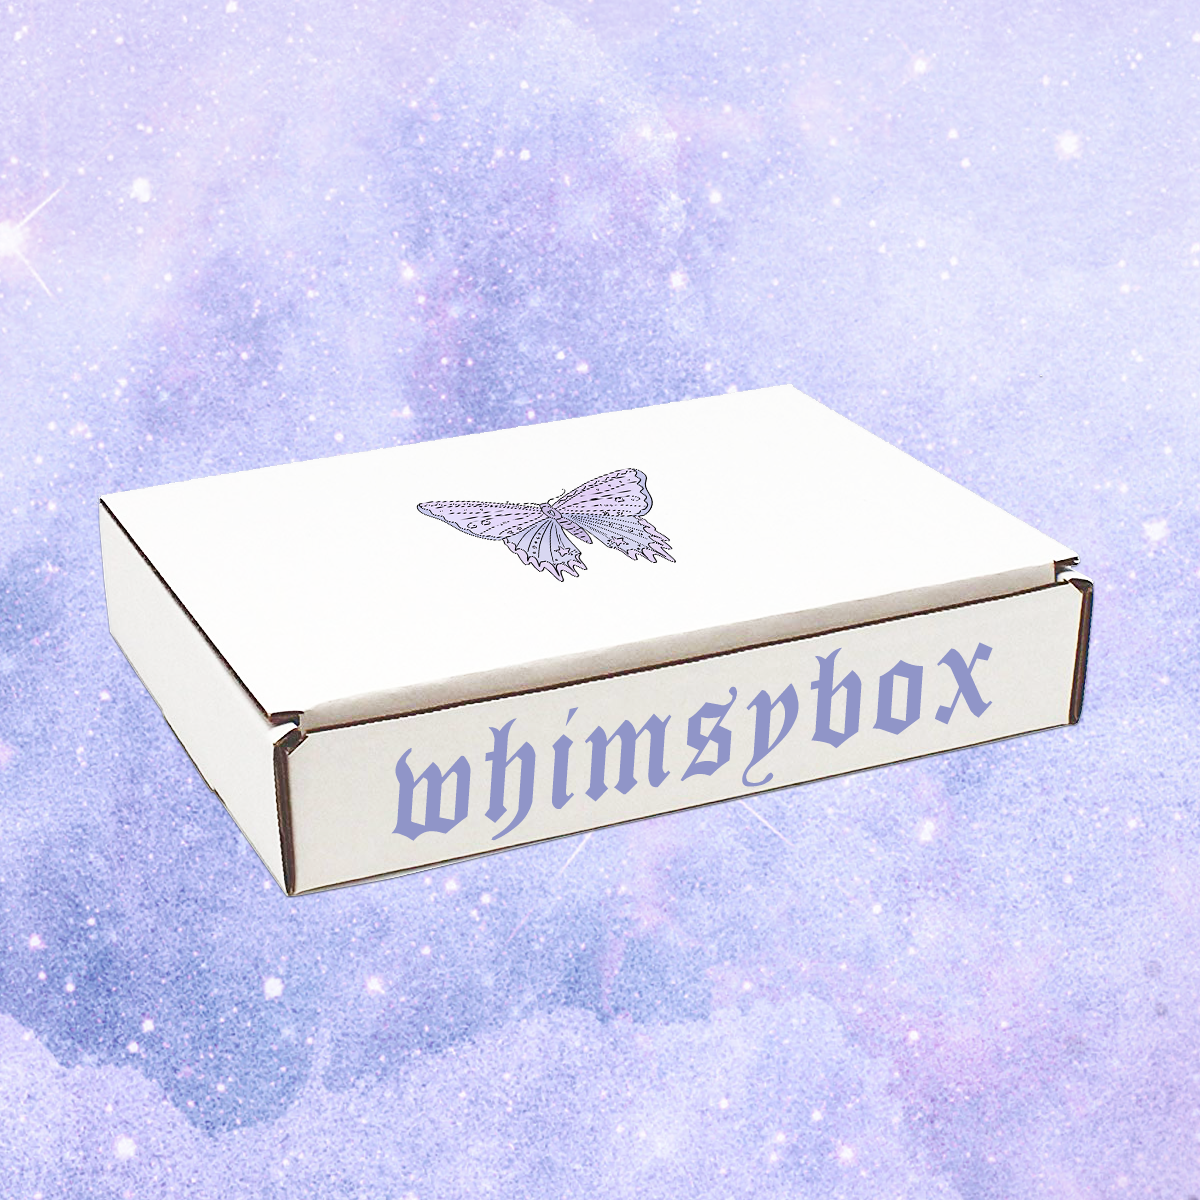 whimsybox-mockup-laceandwhimsy-stationery-sticker-subscription-box.png